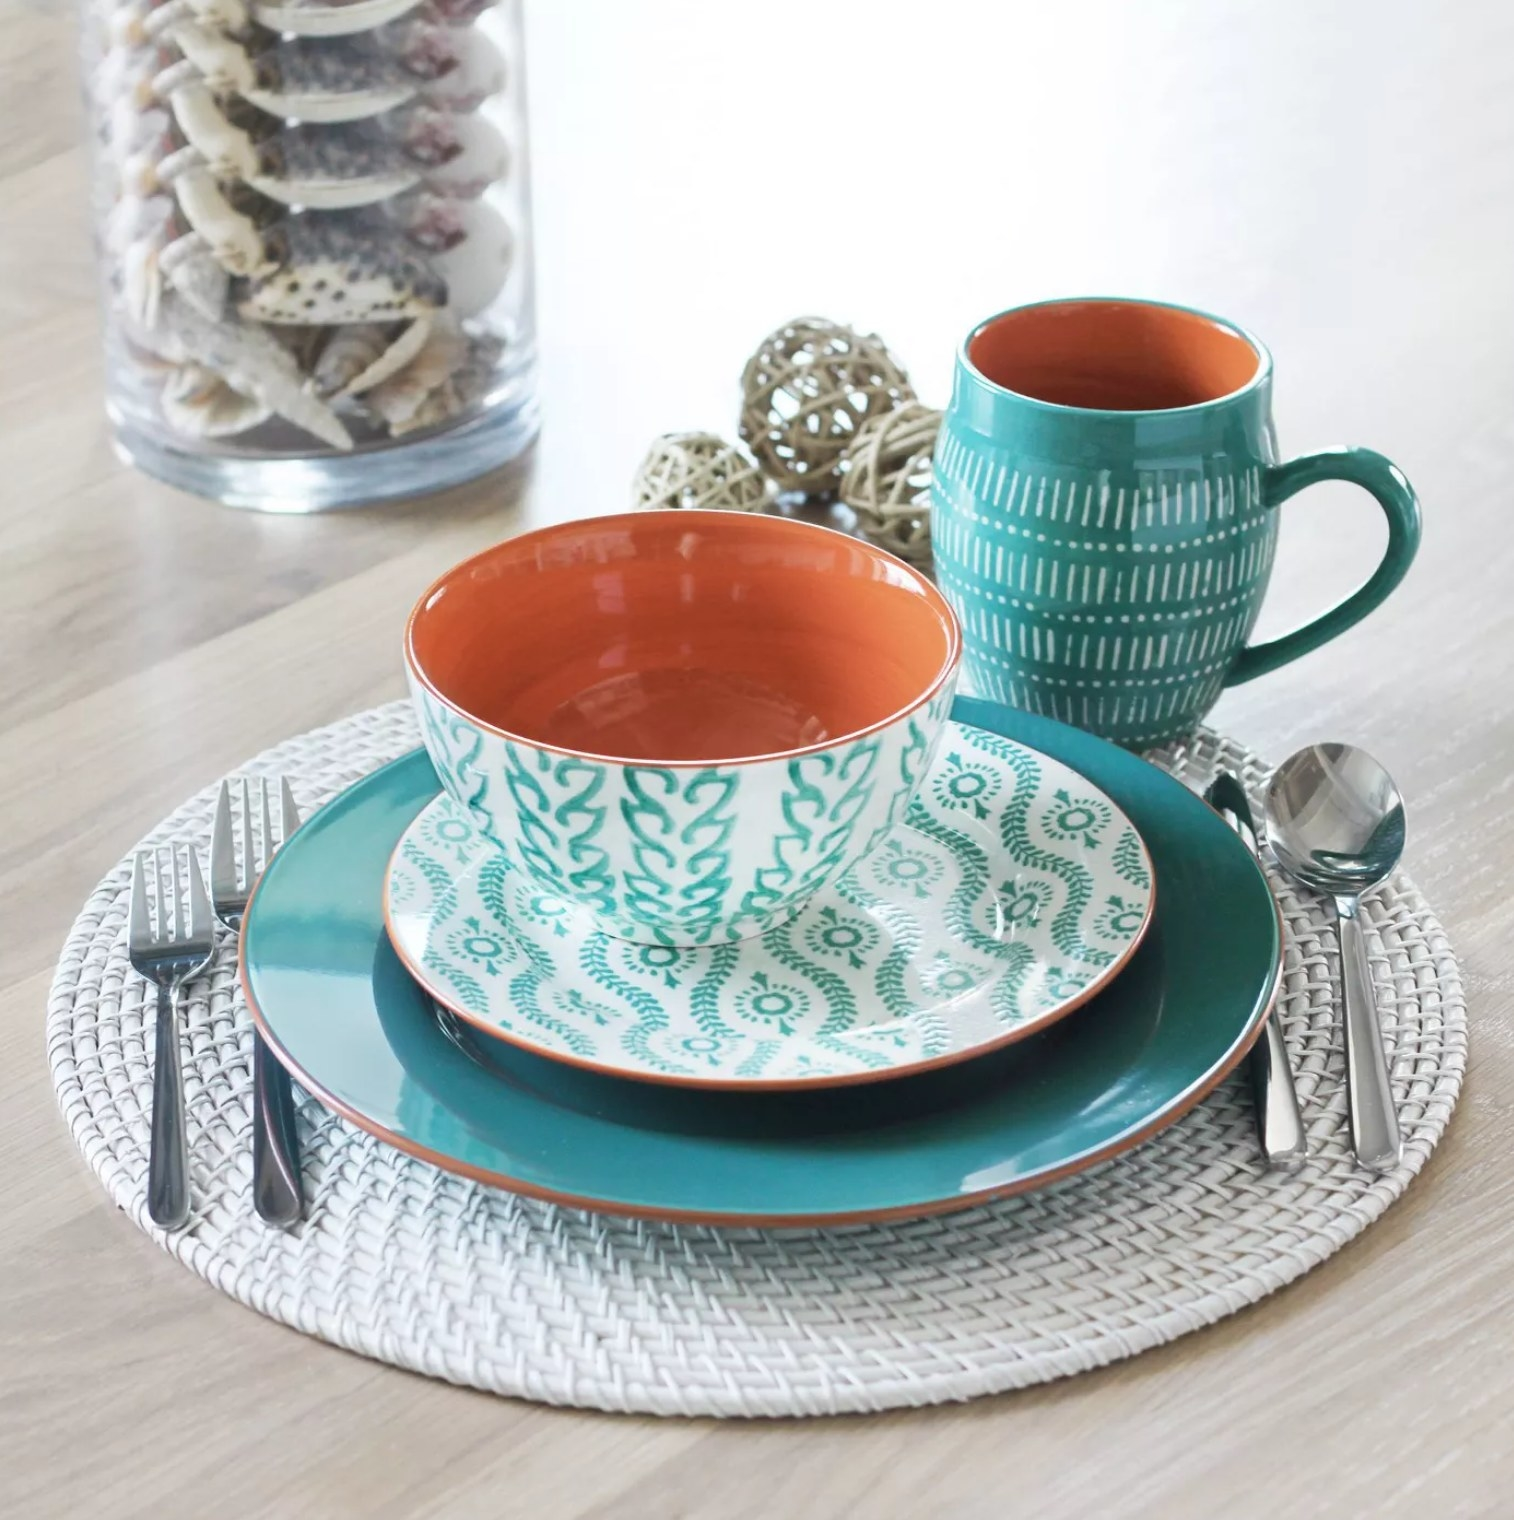 Part of the set with one dinner plate, one salad plate, one bowl, and one mug